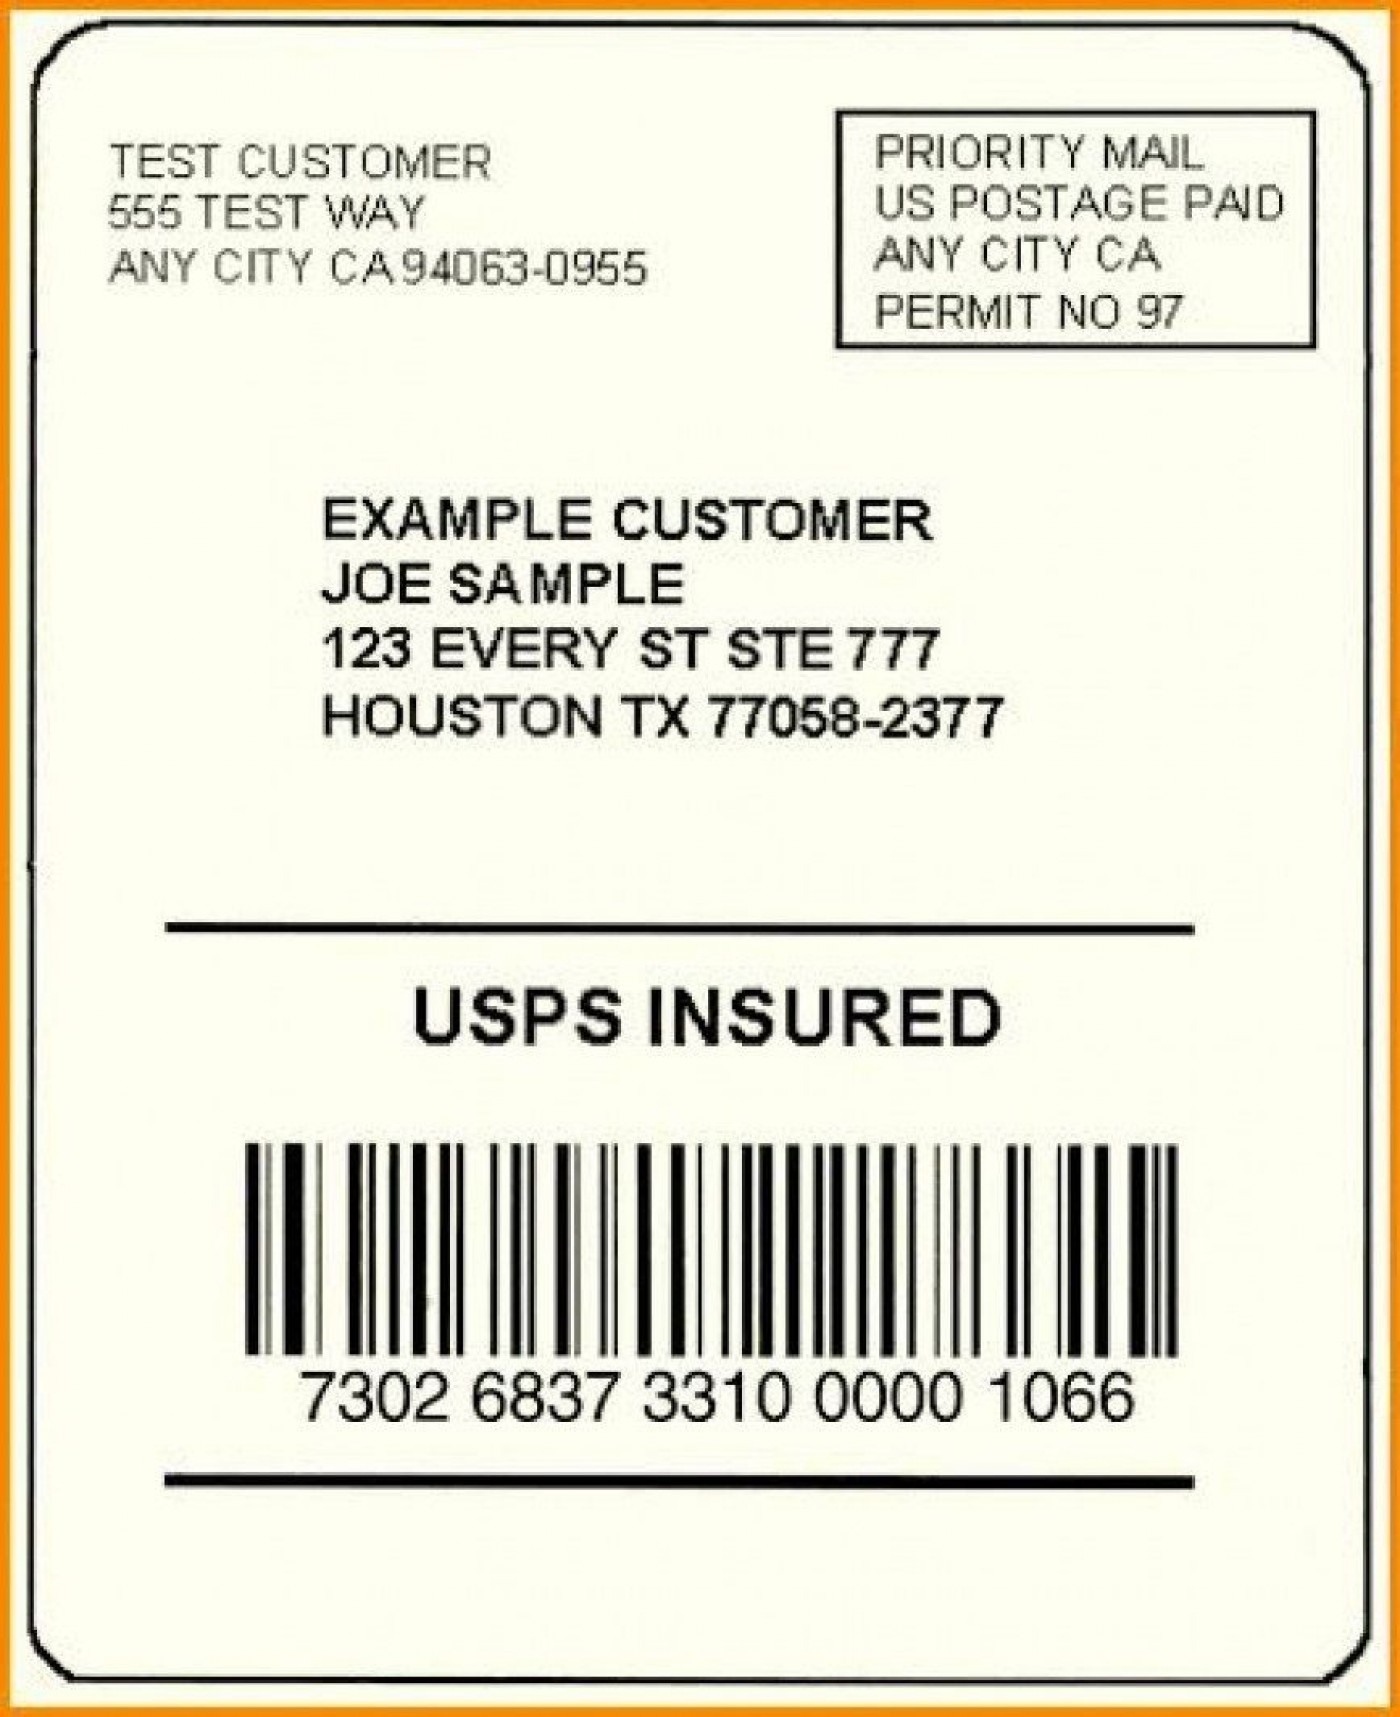 002 Exceptional Free Usp Shipping Label Template Sample 1400